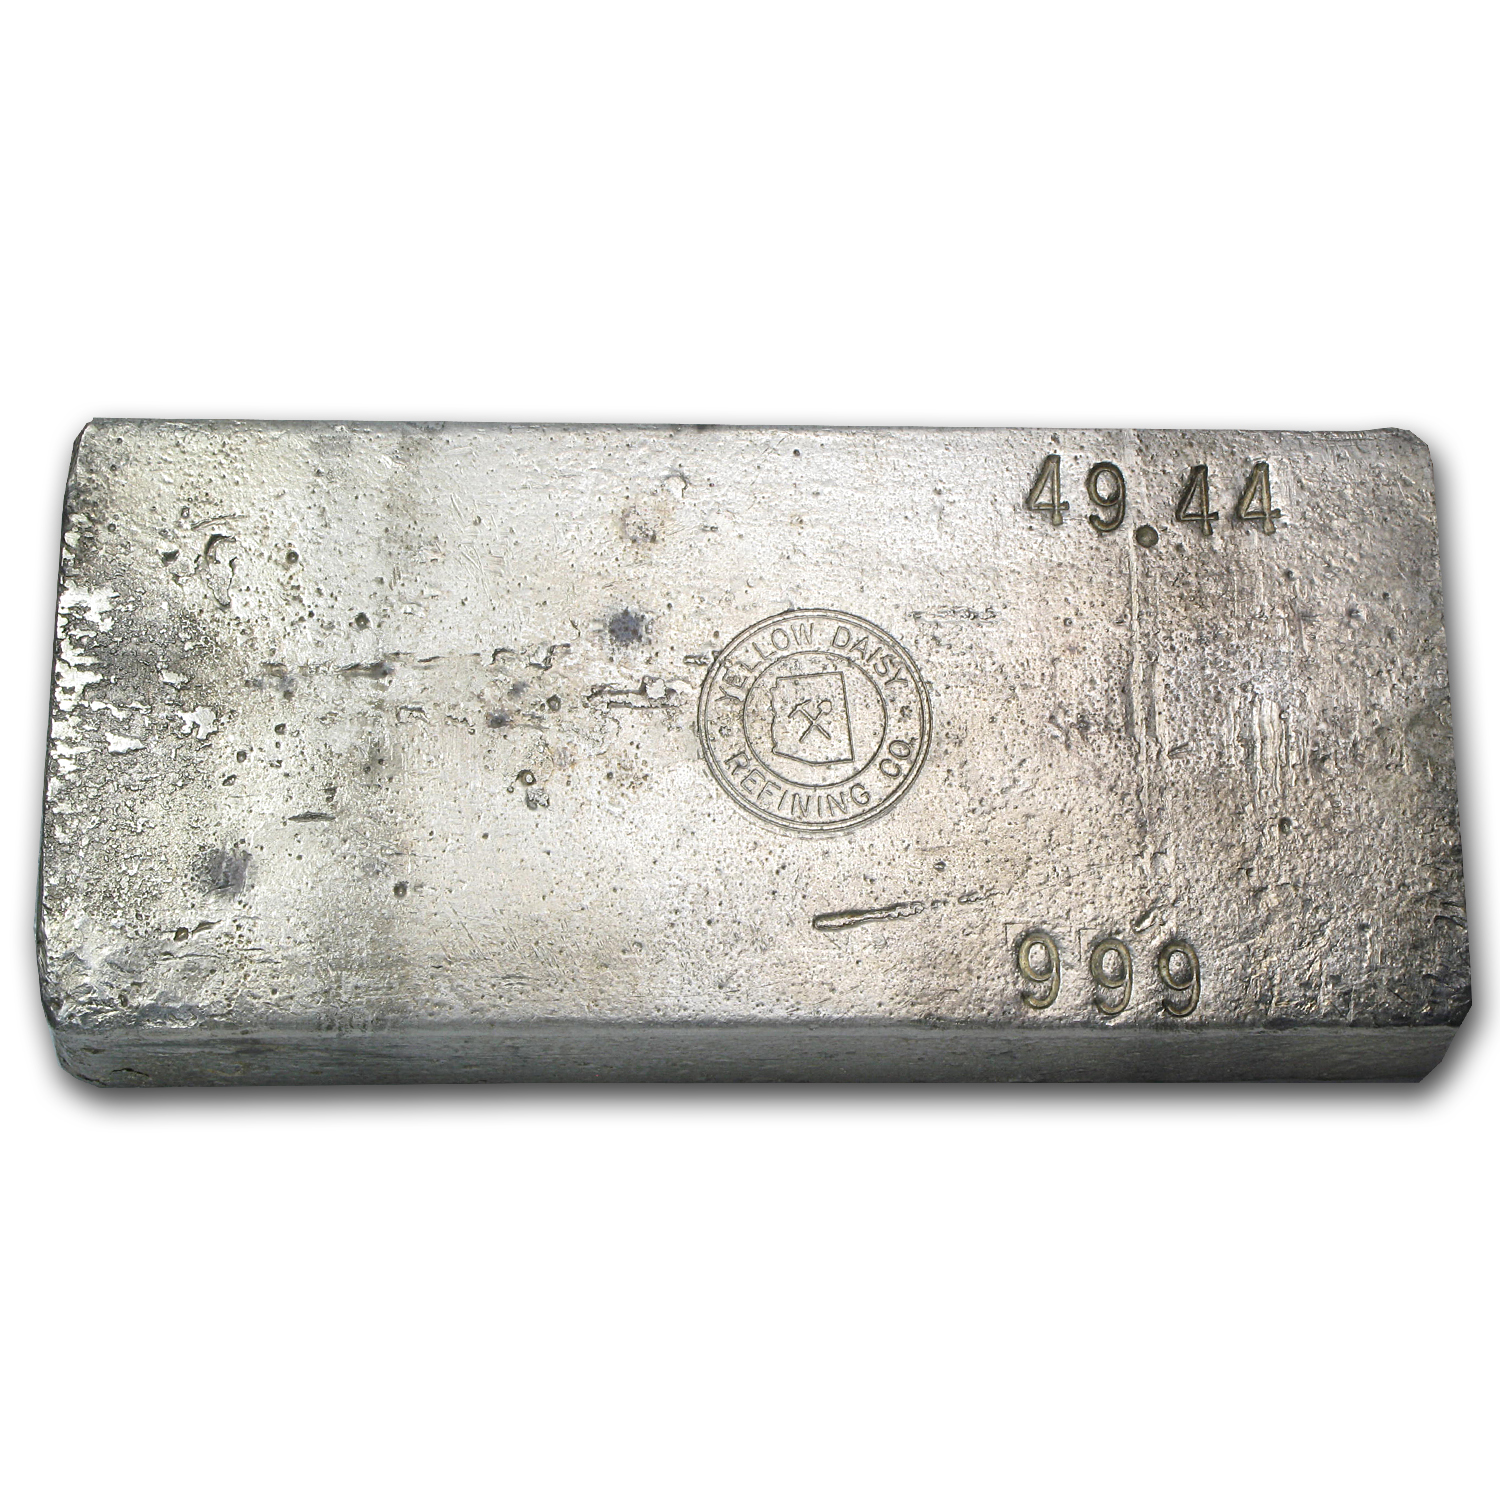 49.44 oz Silver Bars - Yellow Daisy Refining Co.